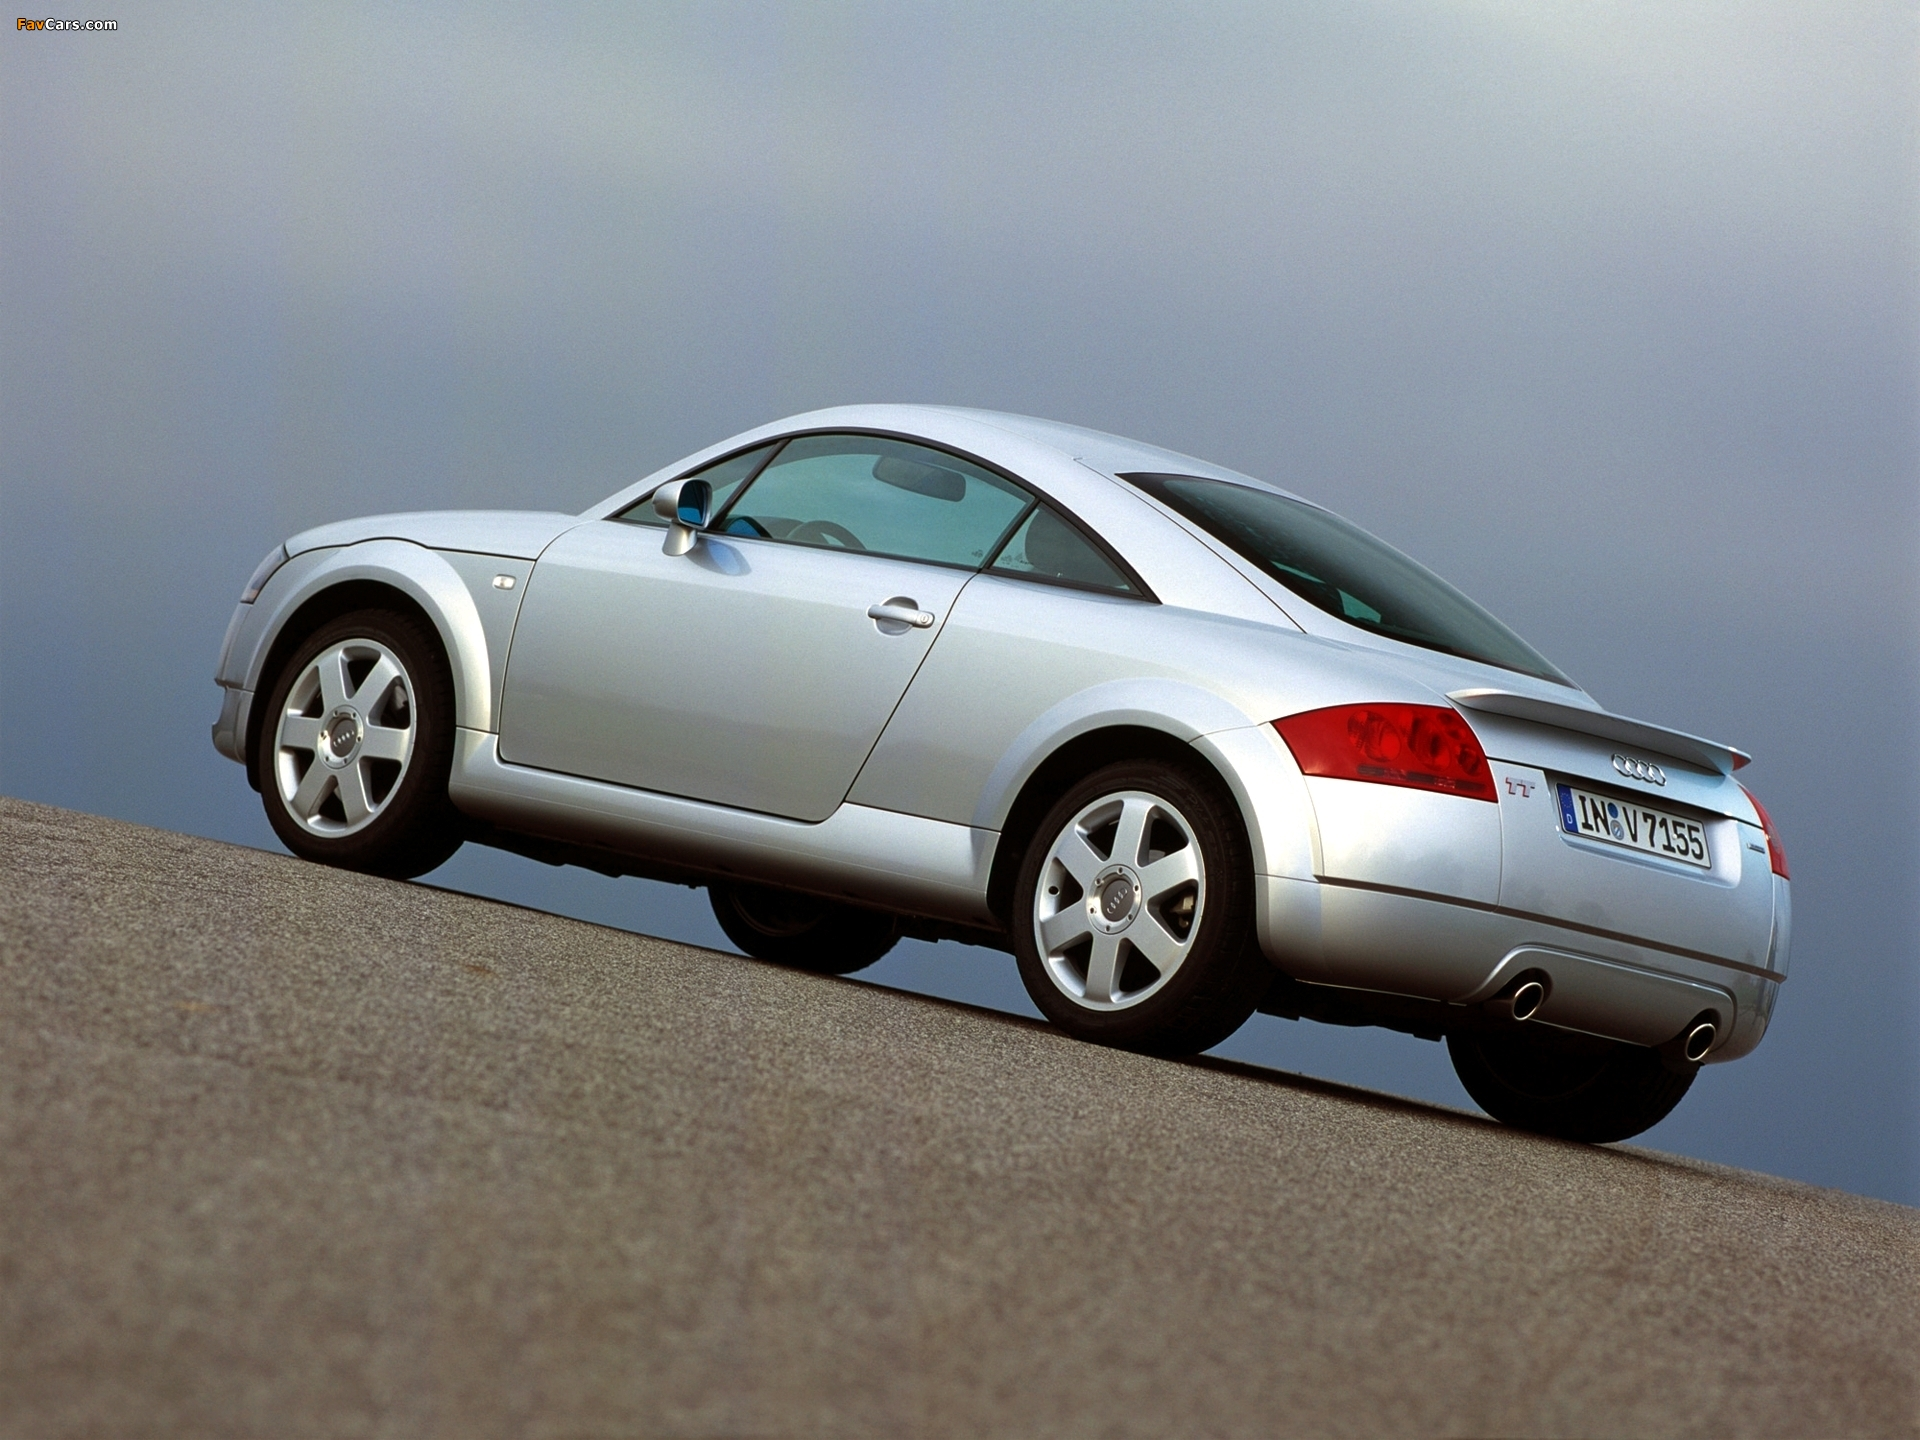 audi tt coupe 8n 1998 2003 photos 1920x1440. Black Bedroom Furniture Sets. Home Design Ideas